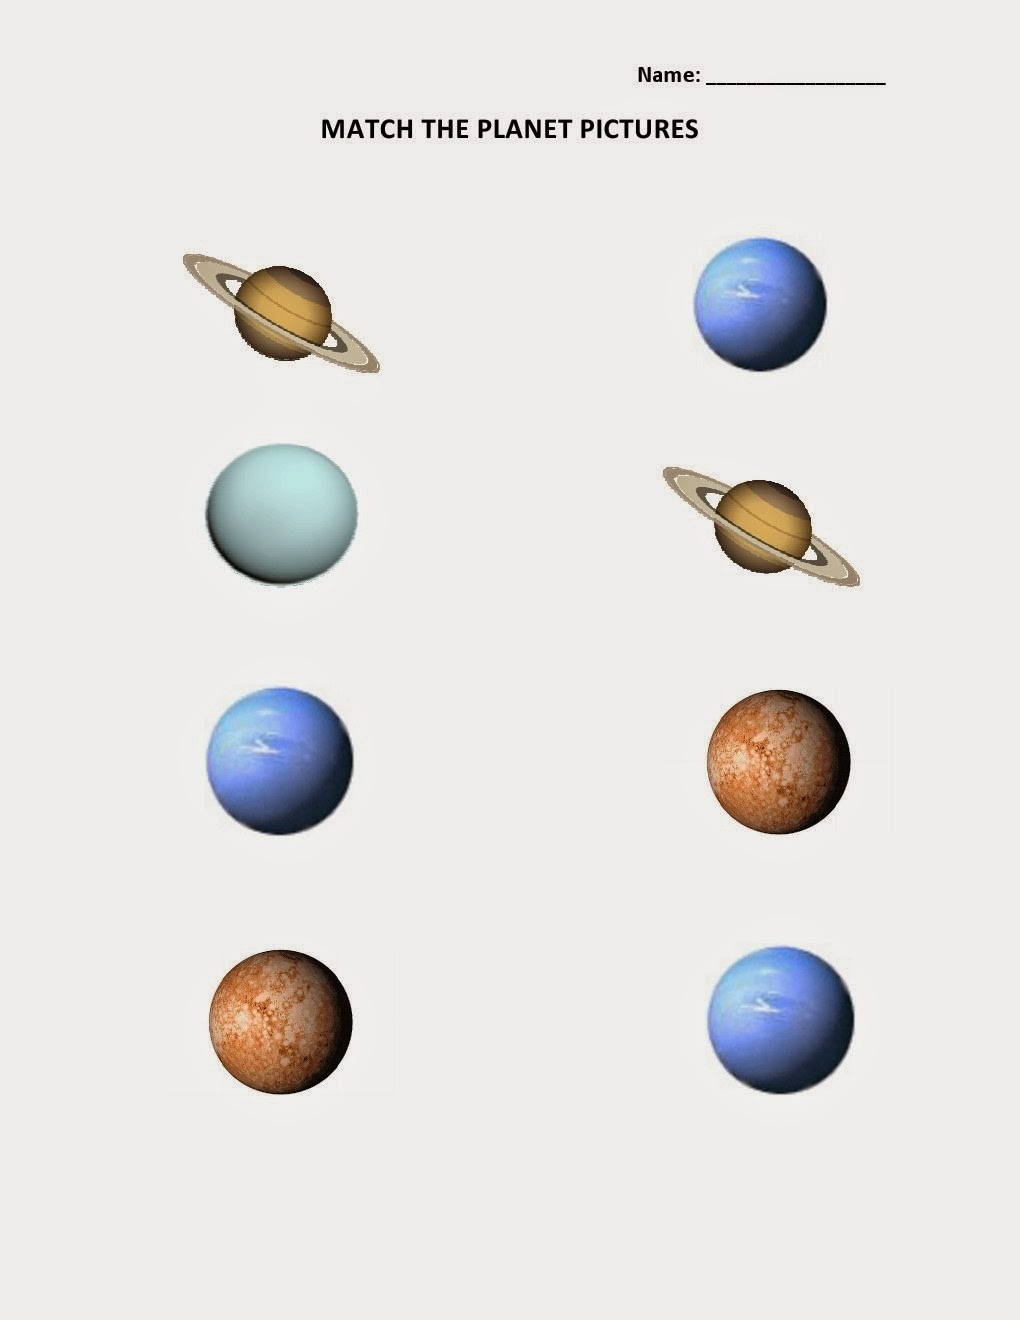 Kids Page Match Solar Planets Picture Worksheet